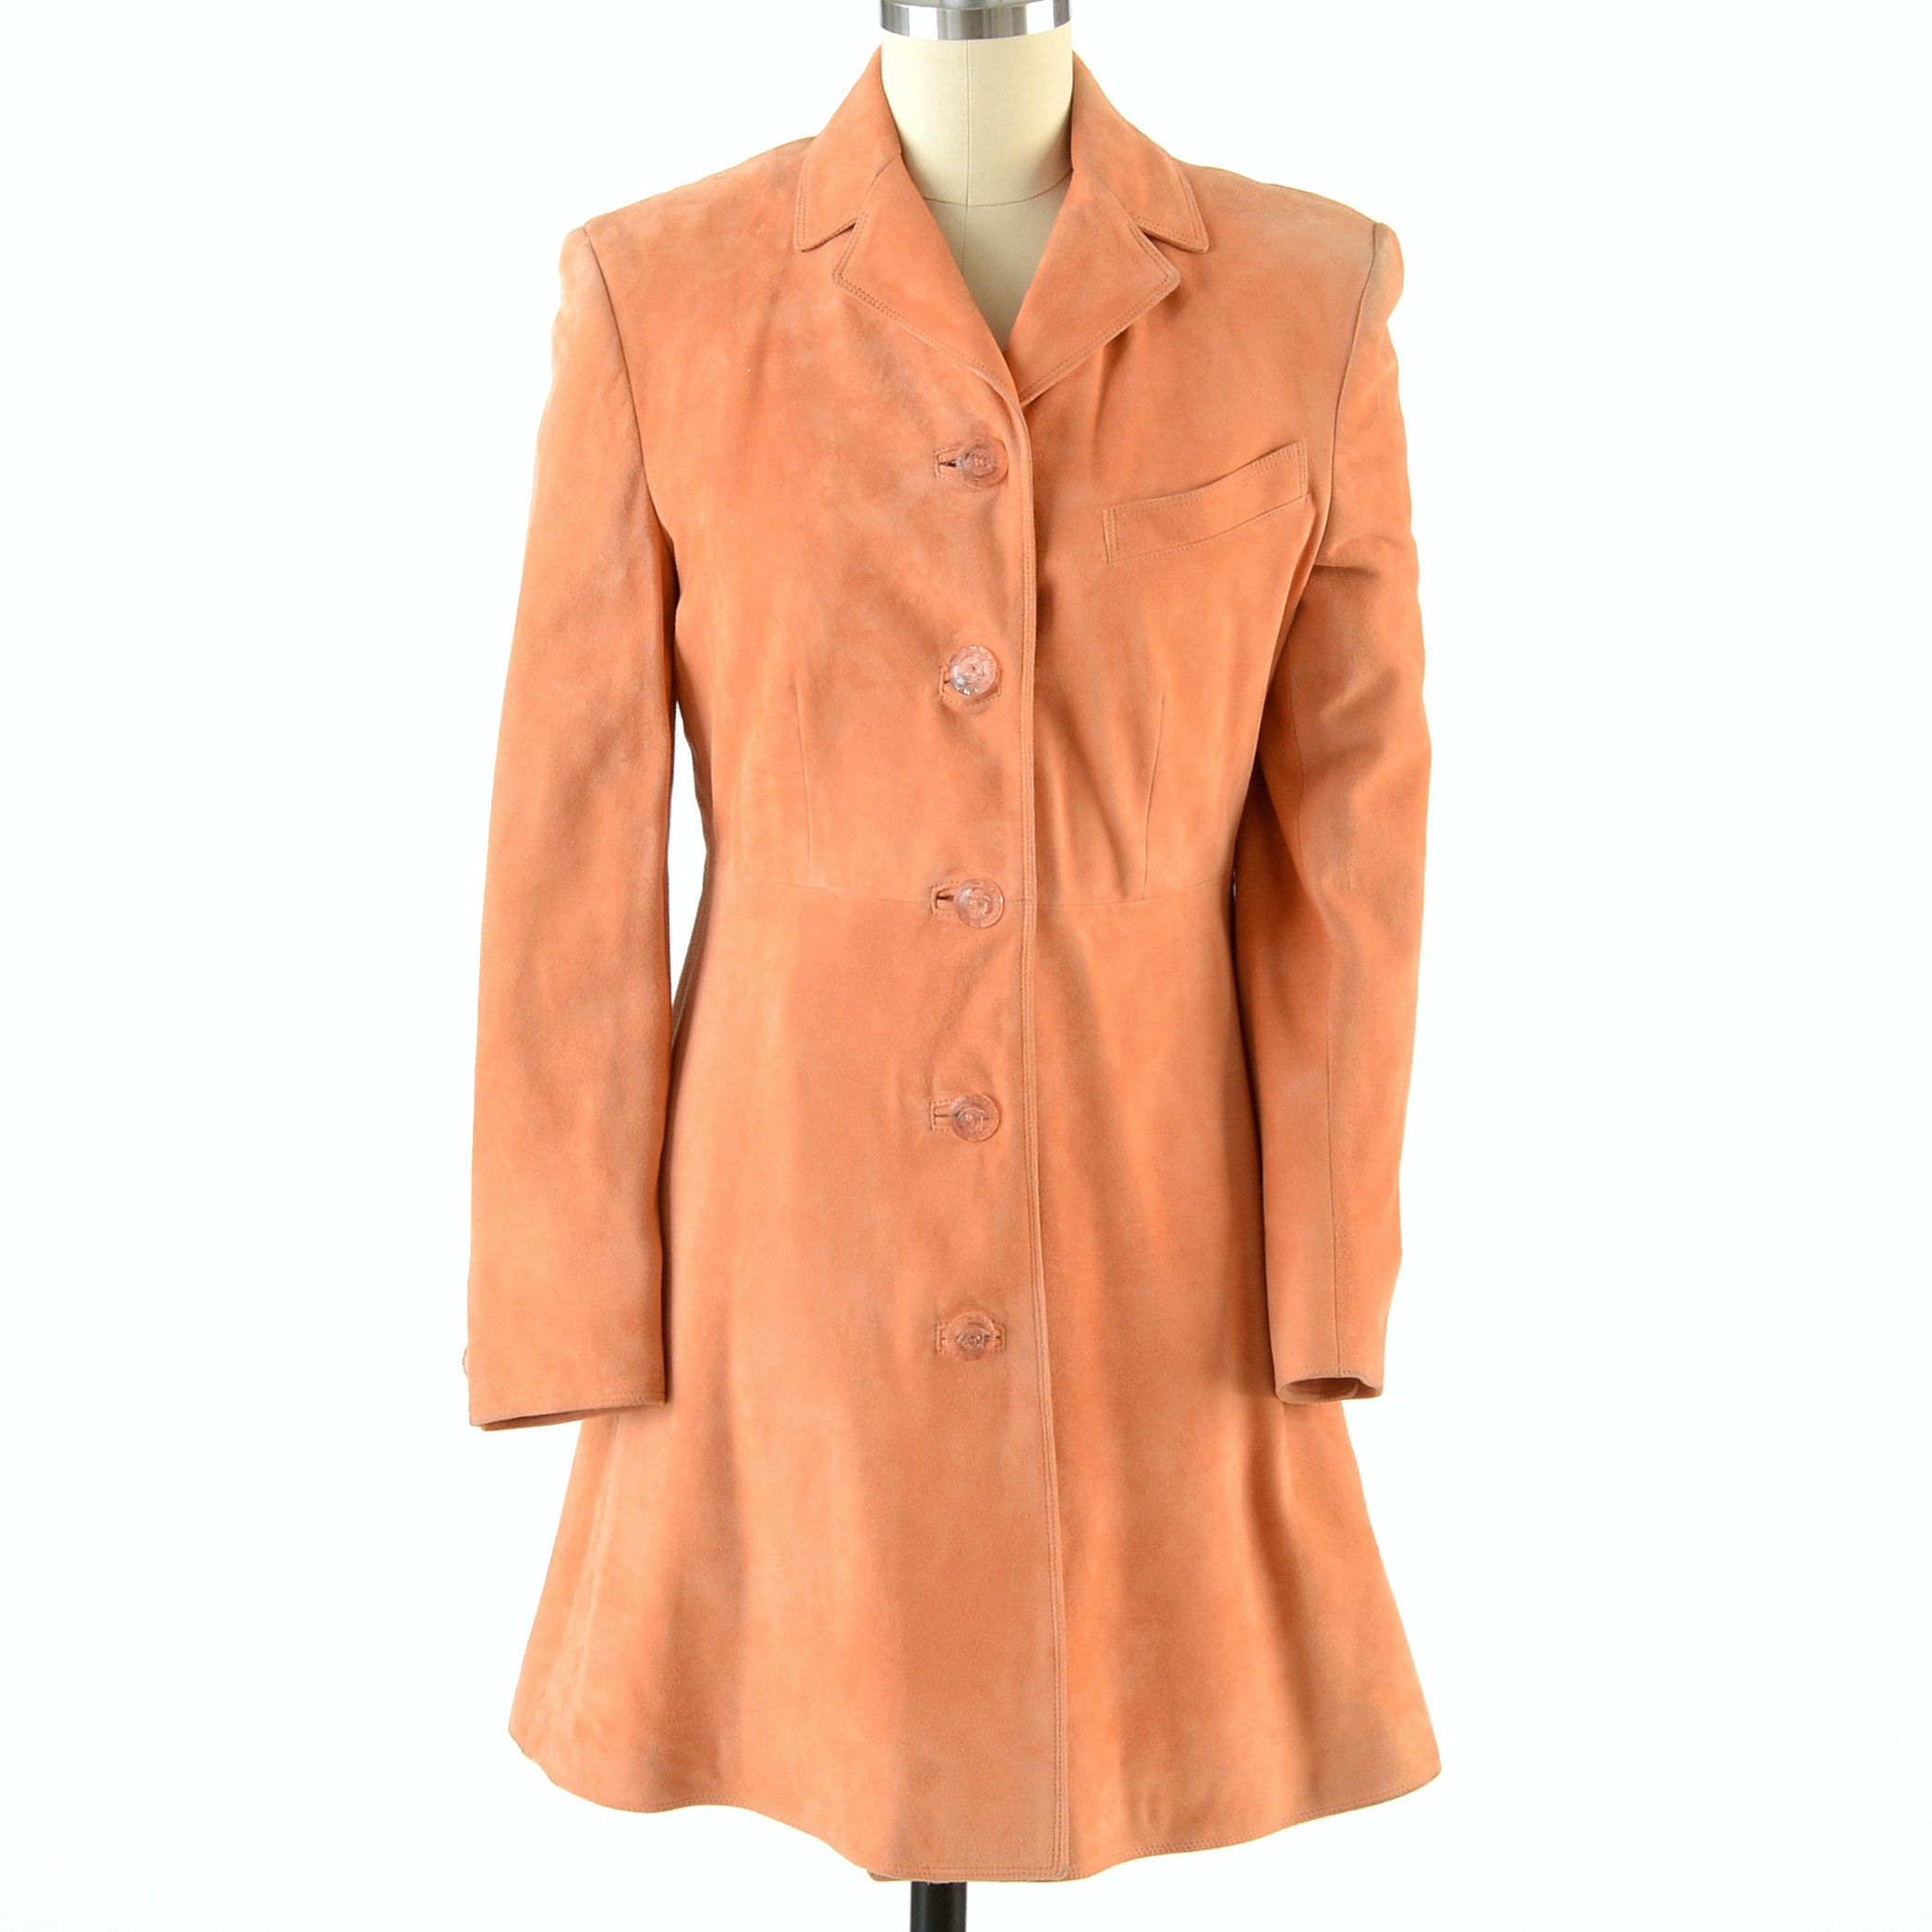 Gianni Versace Peach Suede Leather Coat